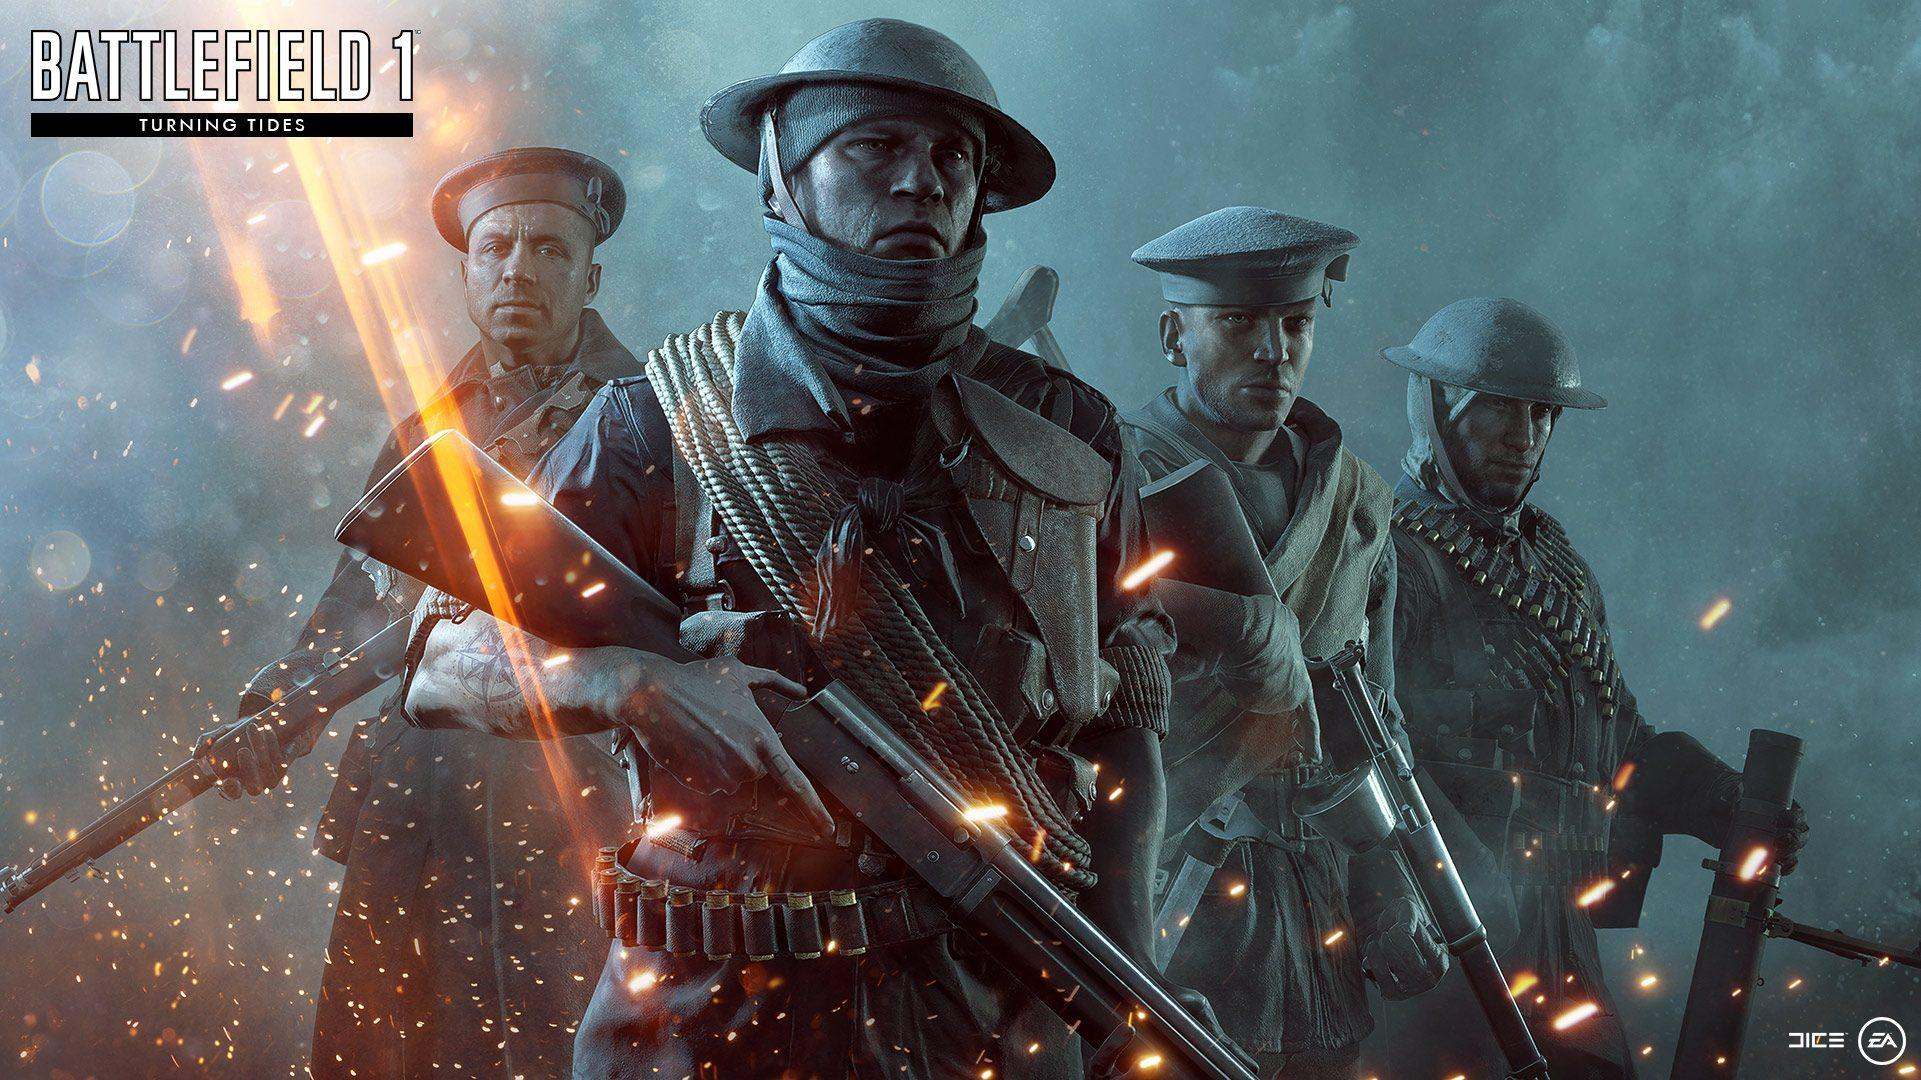 Battlefield 1 DLC Is Playable For Everyone From Jan. 16 To 22